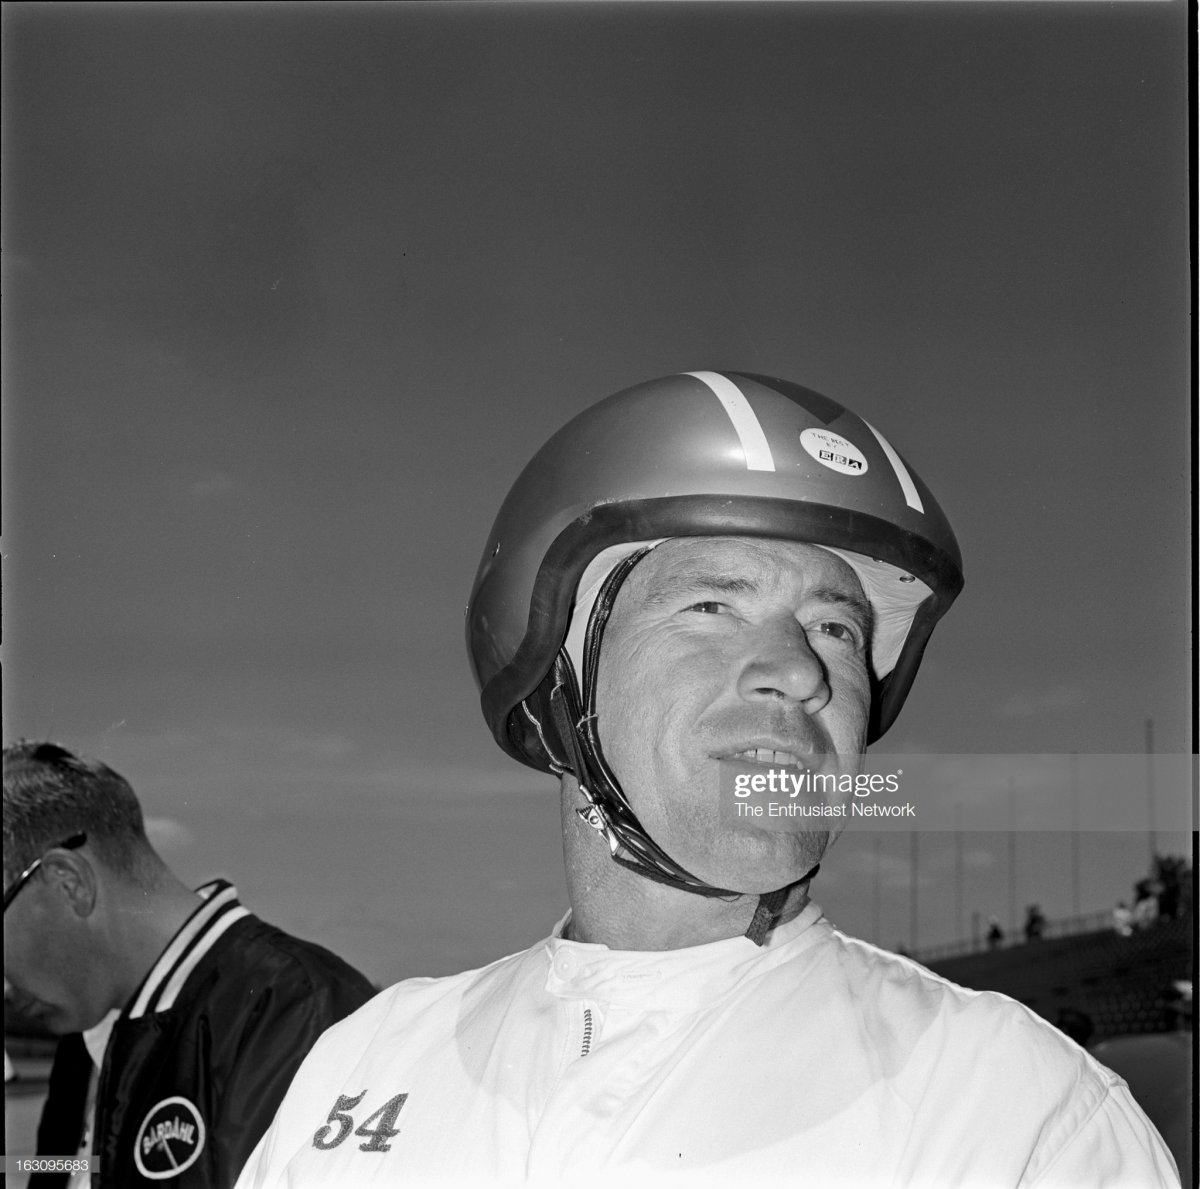 55 1965 Indianapolis 500. Driver Bob Veith stands around by the pits..jpg